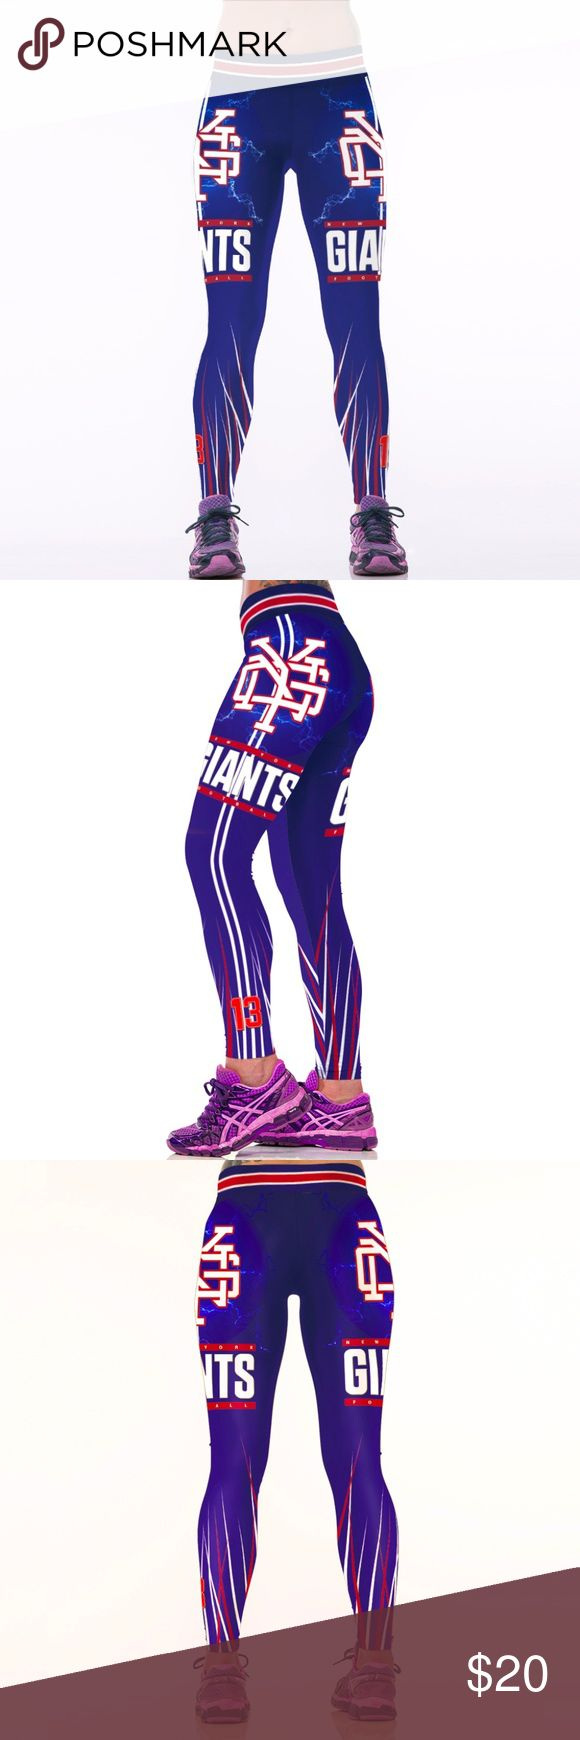 New York Giants Leggings Lightweight soft- quick dry breathable fabric Suitable for any kind of workout, gym, yoga, Zumba, cycling, etc. or casual wear High-quality construction with 6-thread double lock stitch seams Four-way Stretch Material: 82% Polyester, 18% Spandex Pants Leggings